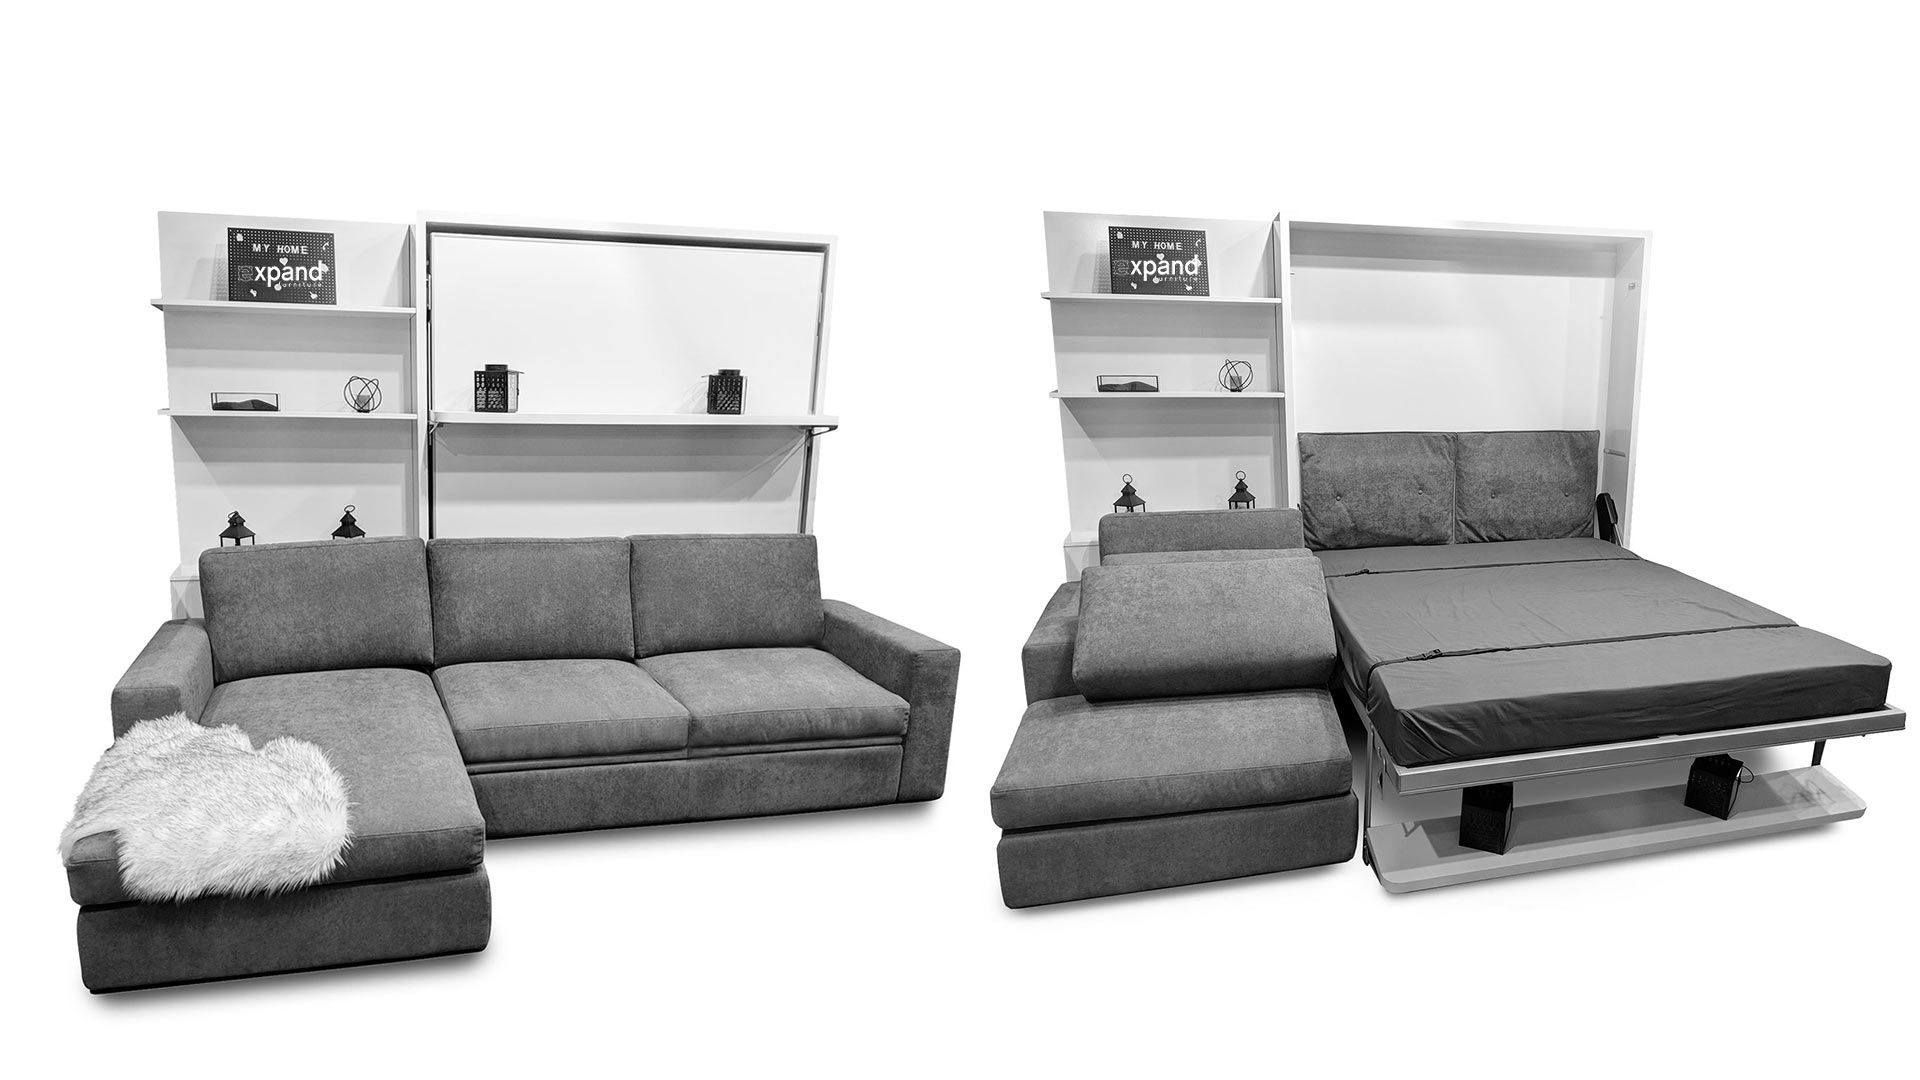 Compatto Shelf Wall Bed over Sectional Sofa в 2020 г Диван